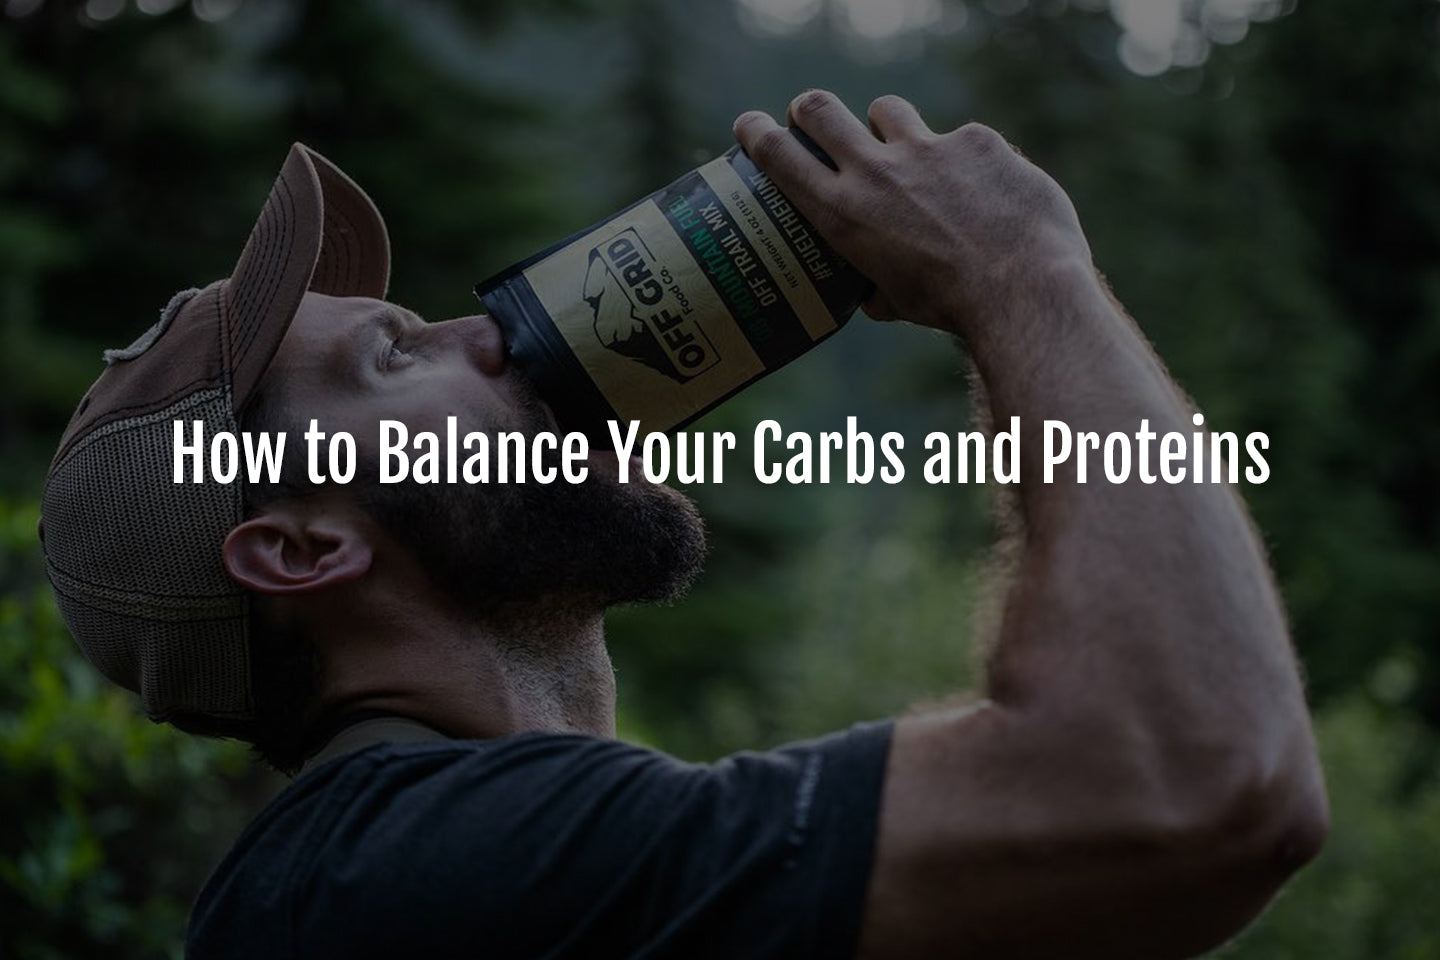 How to Balance Carbs and Protein in the Backcountry